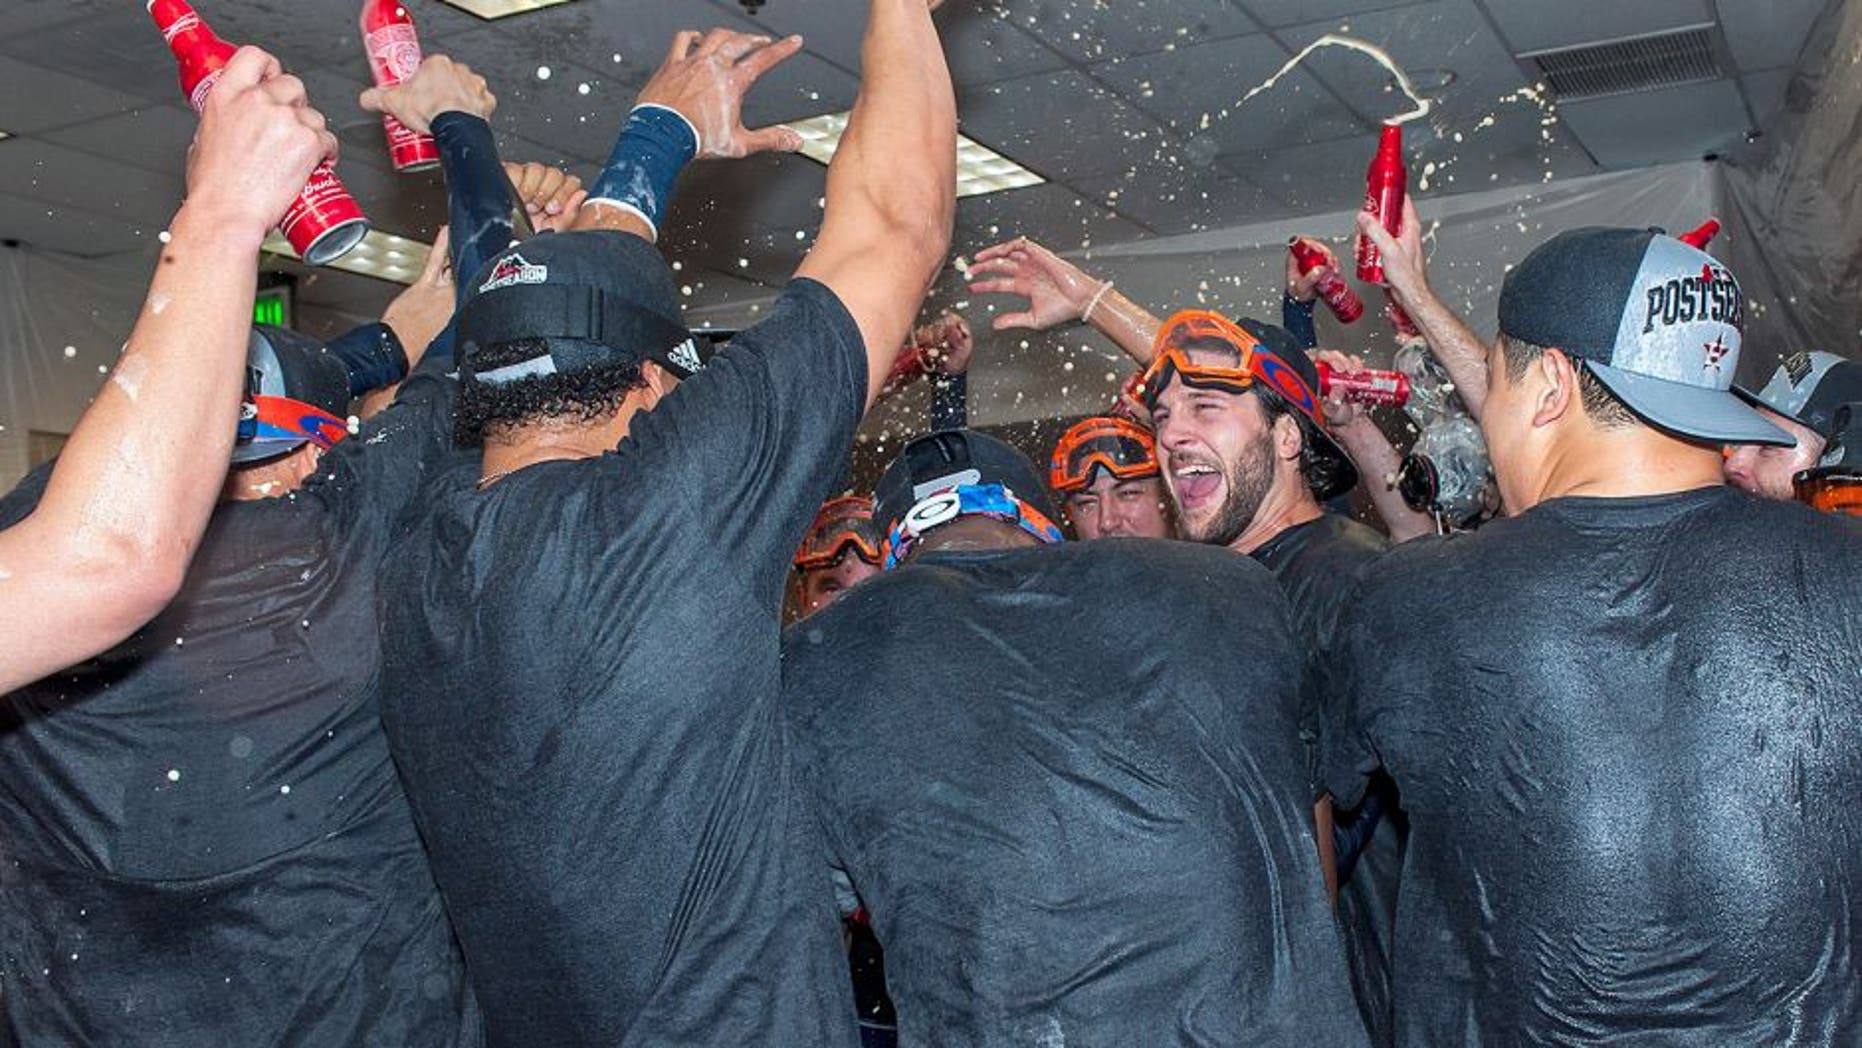 PHOENIX, AZ - OCTOBER 4: Jake Marisnick #6 of the Houston Astros celebrates with his team after clinching a wild card position in the American League playoffs after a MLB game against the Arizona Diamondbacks on October 4, 2015 at Chase Field in Phoenix, Arizona. (Photo by Darin Wallentine/Getty Images)